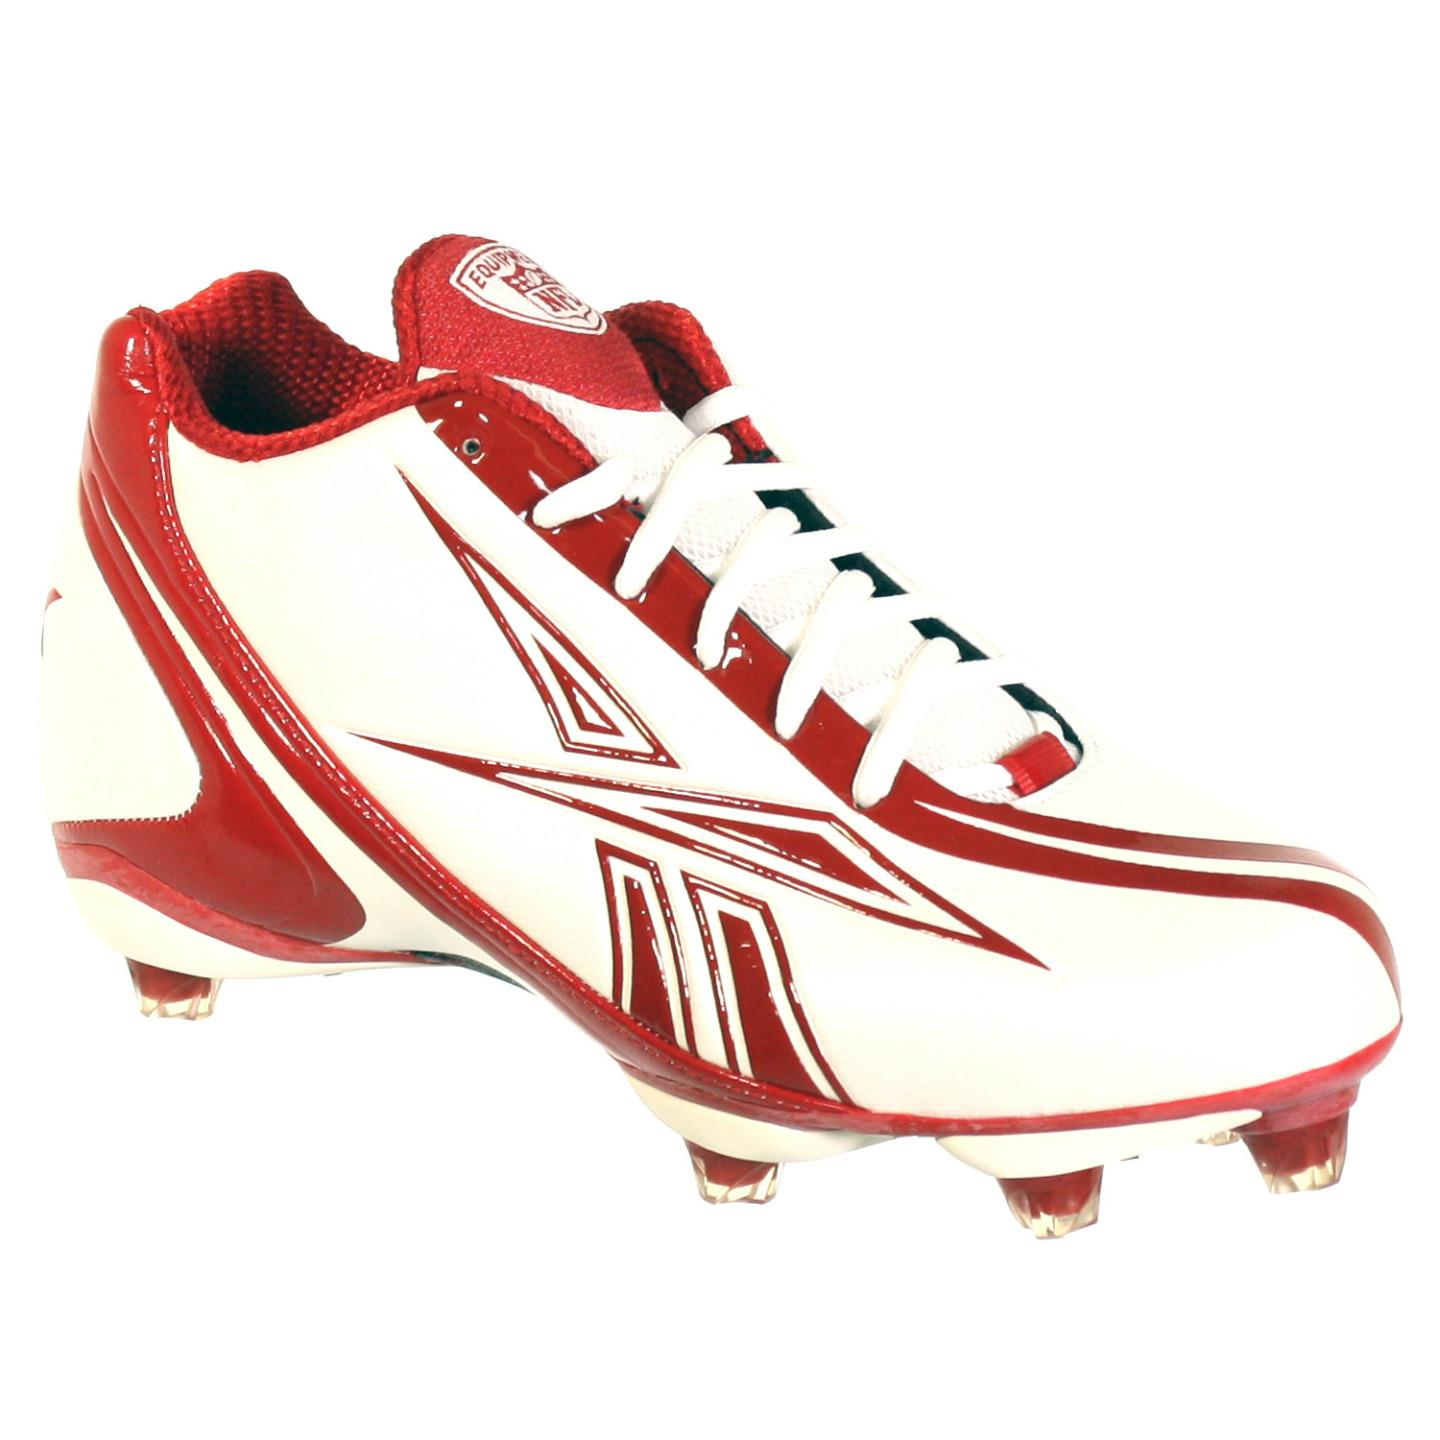 REEBOK NFL BURNER SPEED 5/8 SD3 MENS FOOTBALL CLEATS WHITE RED 6.5